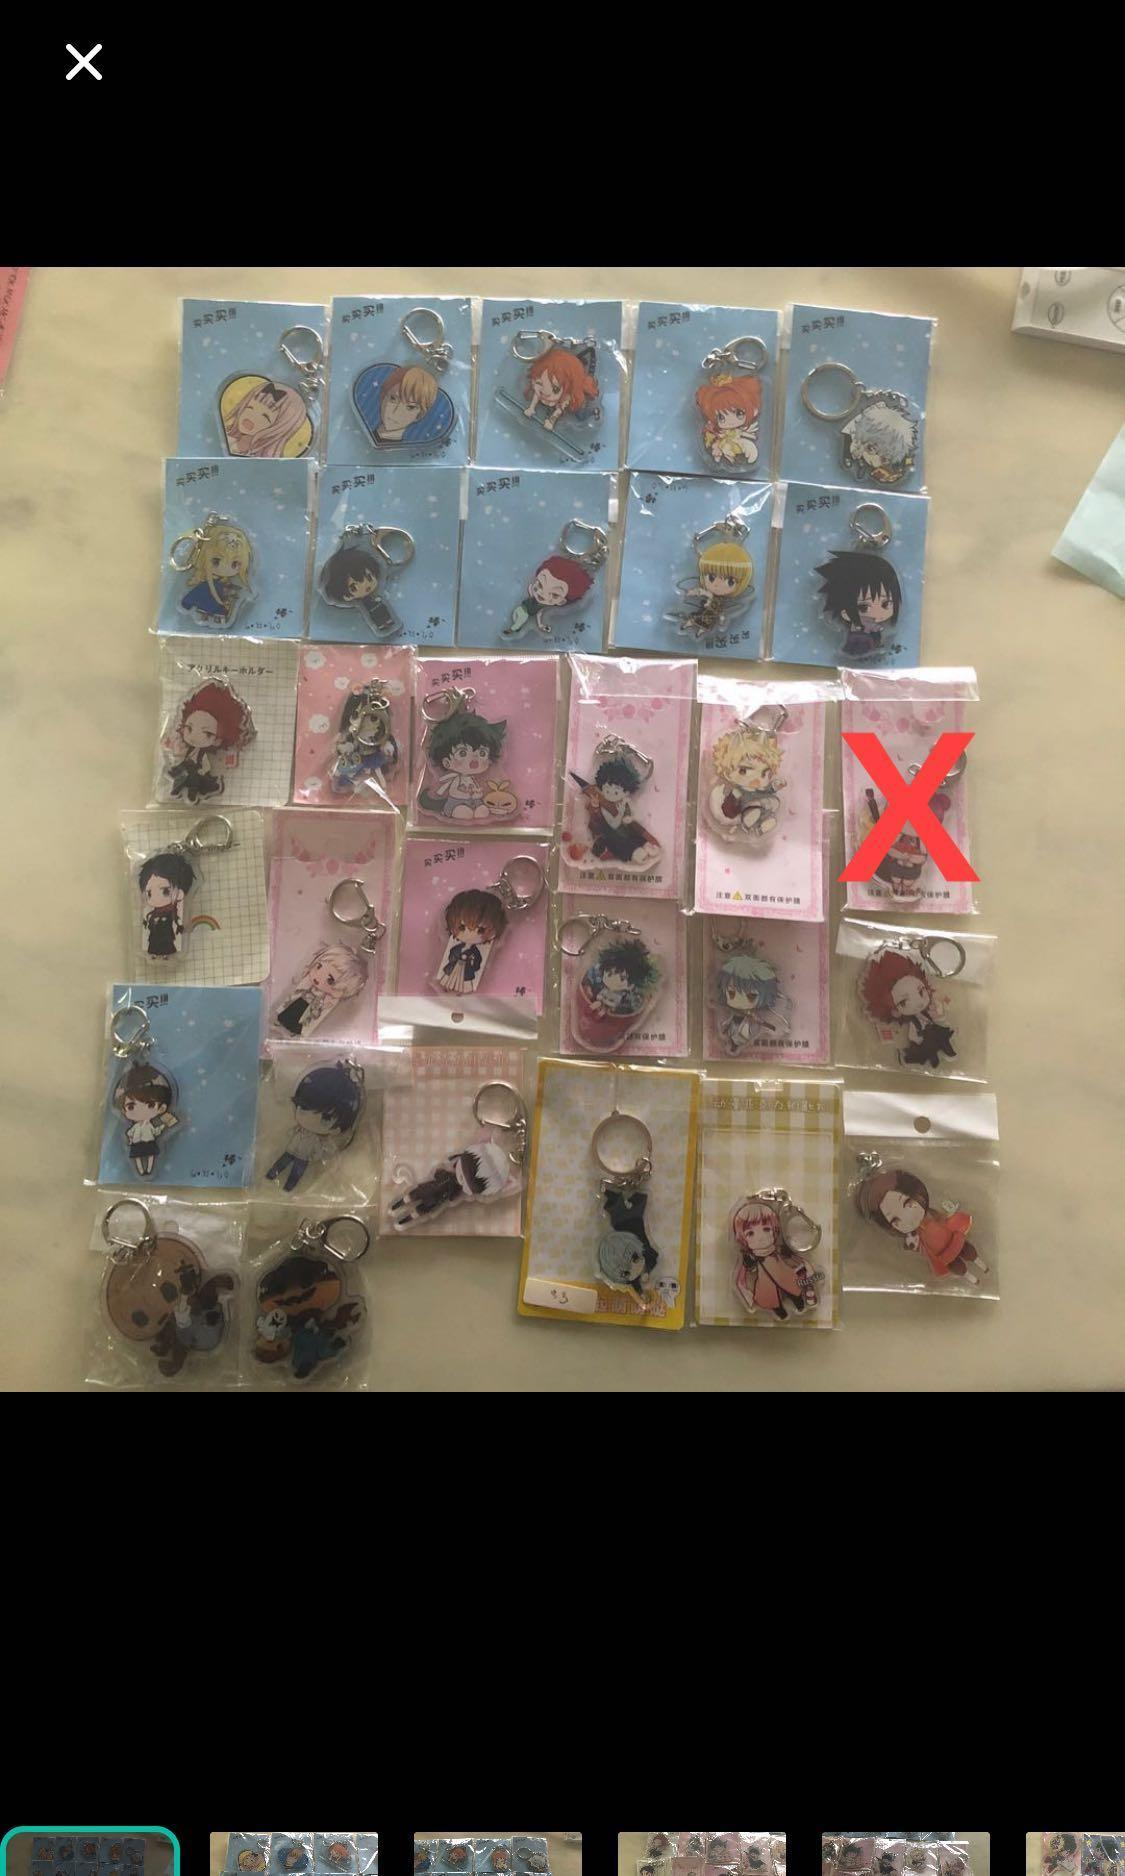 Instocks Anime Keychains & Stands